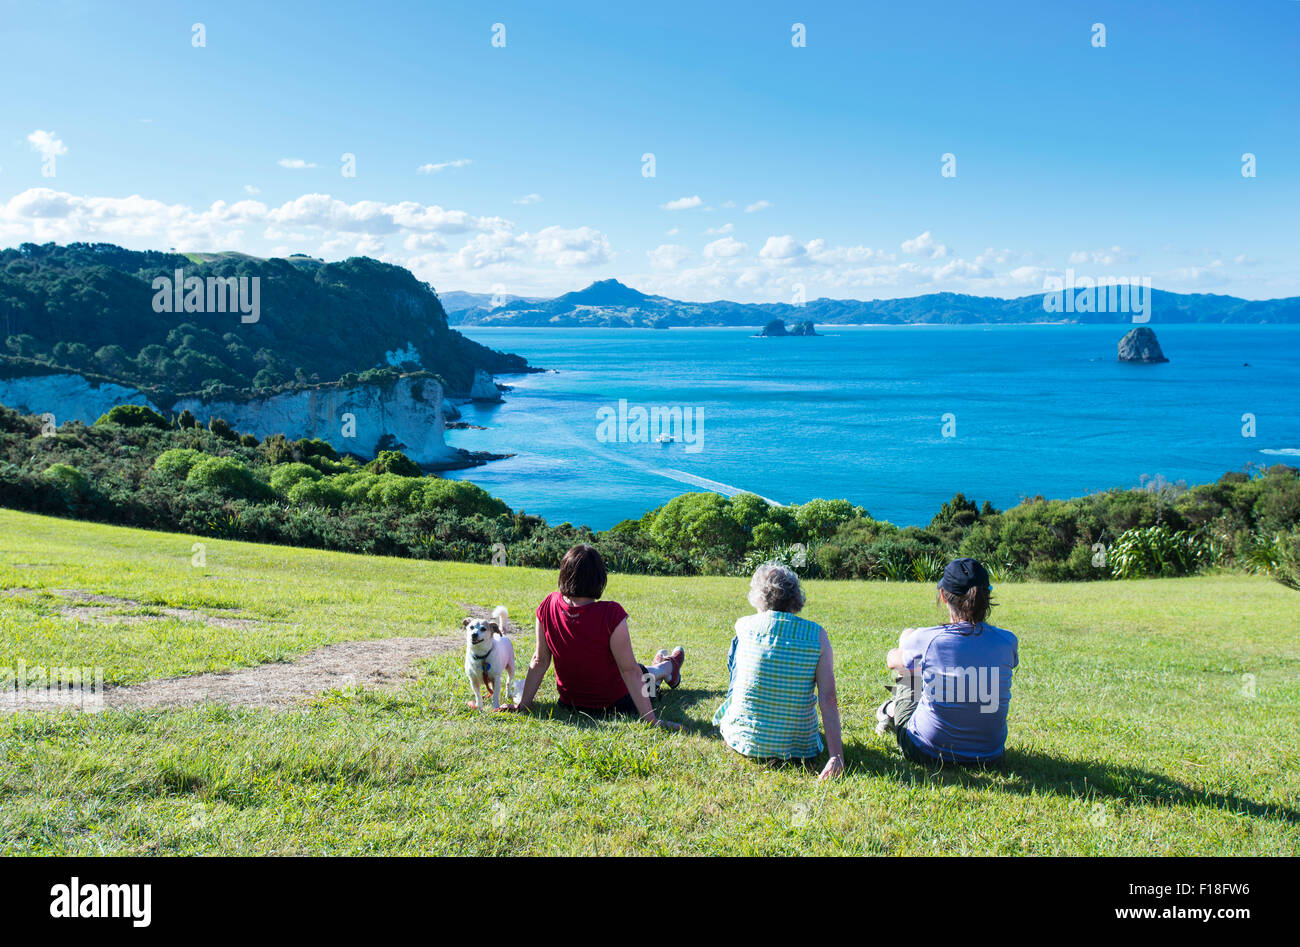 3 people and their dog relaxing on the grass and looking out over Gemstone Bay and Coromandel Peninsula - Stock Image